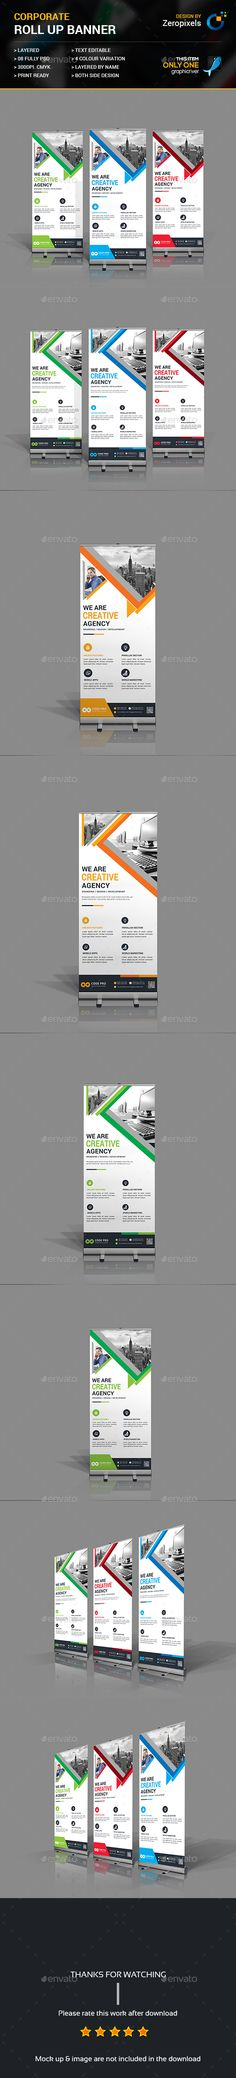 Corporate Rollup Banner Bundle